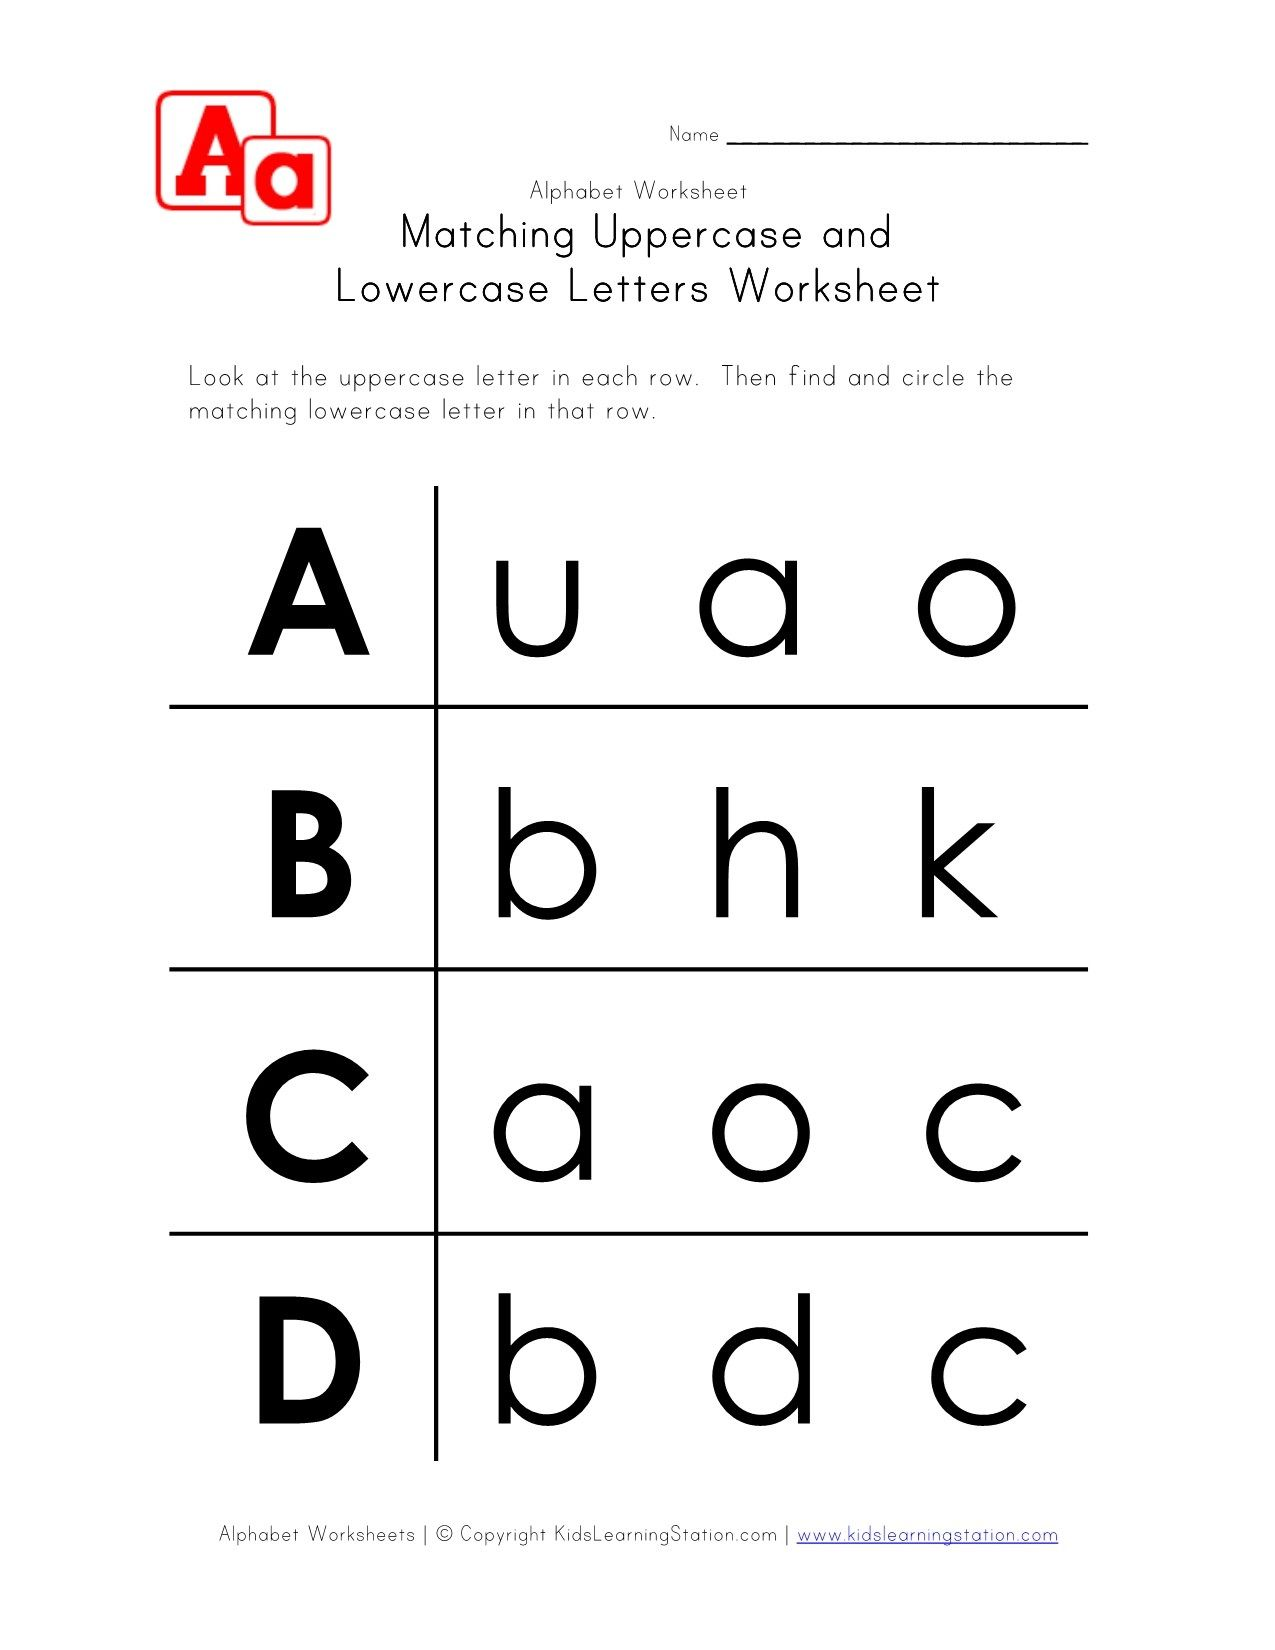 Uppercase And Lowercase Letters Worksheet A D Lowercase Letters Printable Uppercase And Lowercase Letters Lower Case Letters